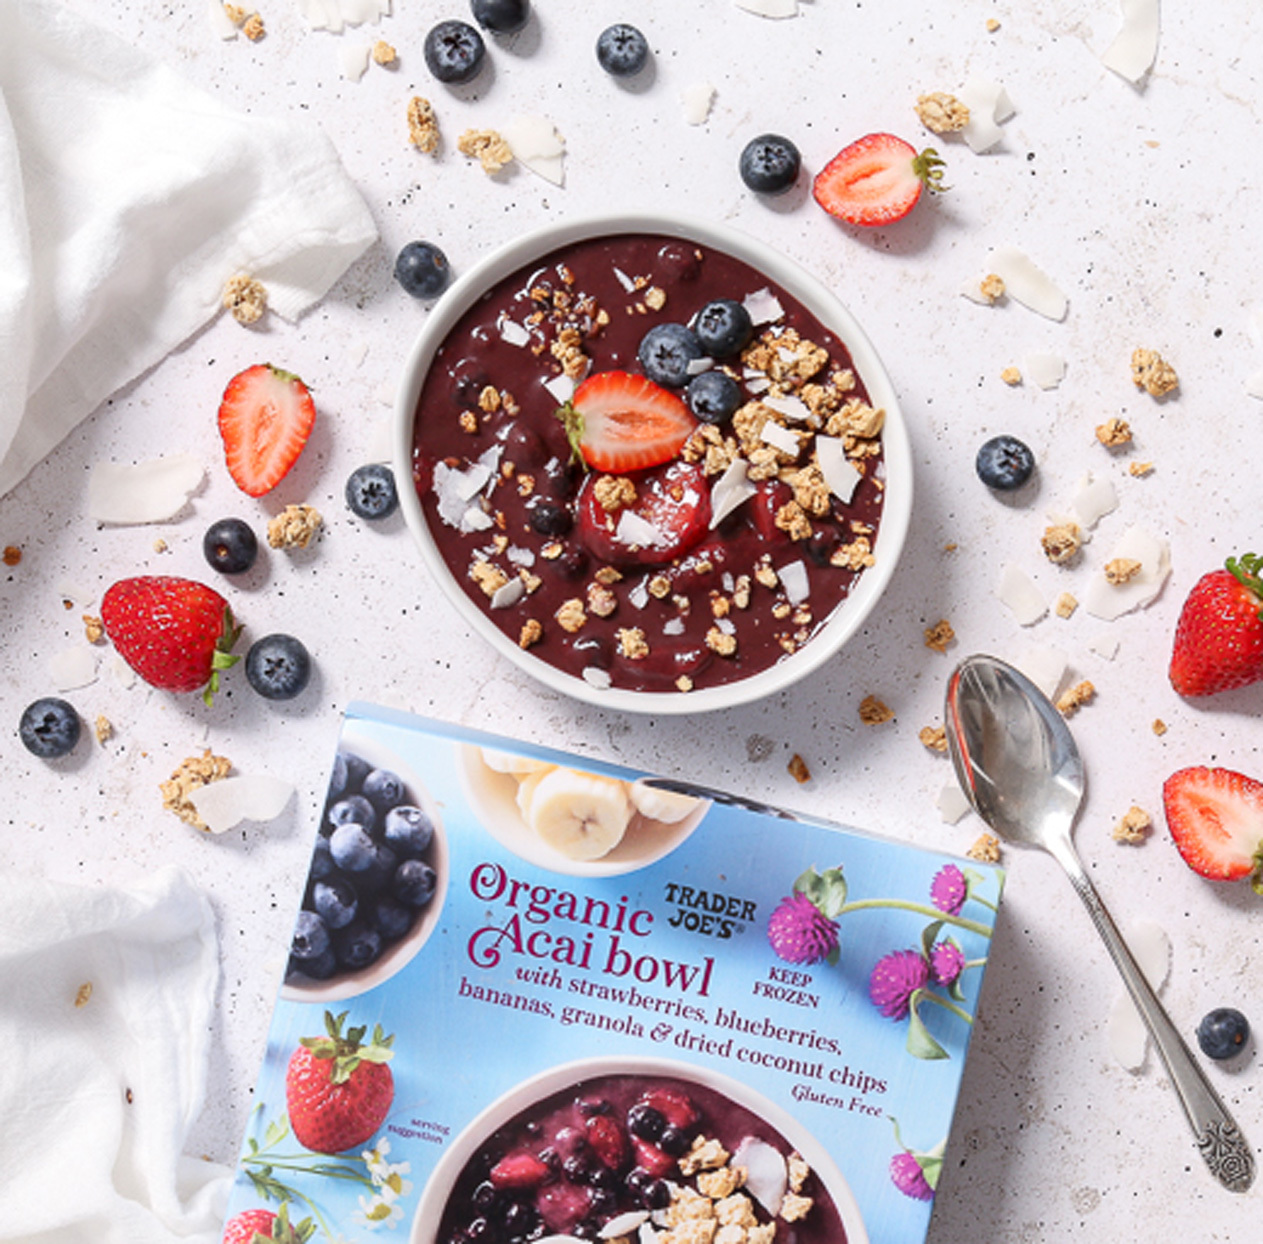 Trader Joe's Is Selling $4 Acai Bowls With All the Toppings